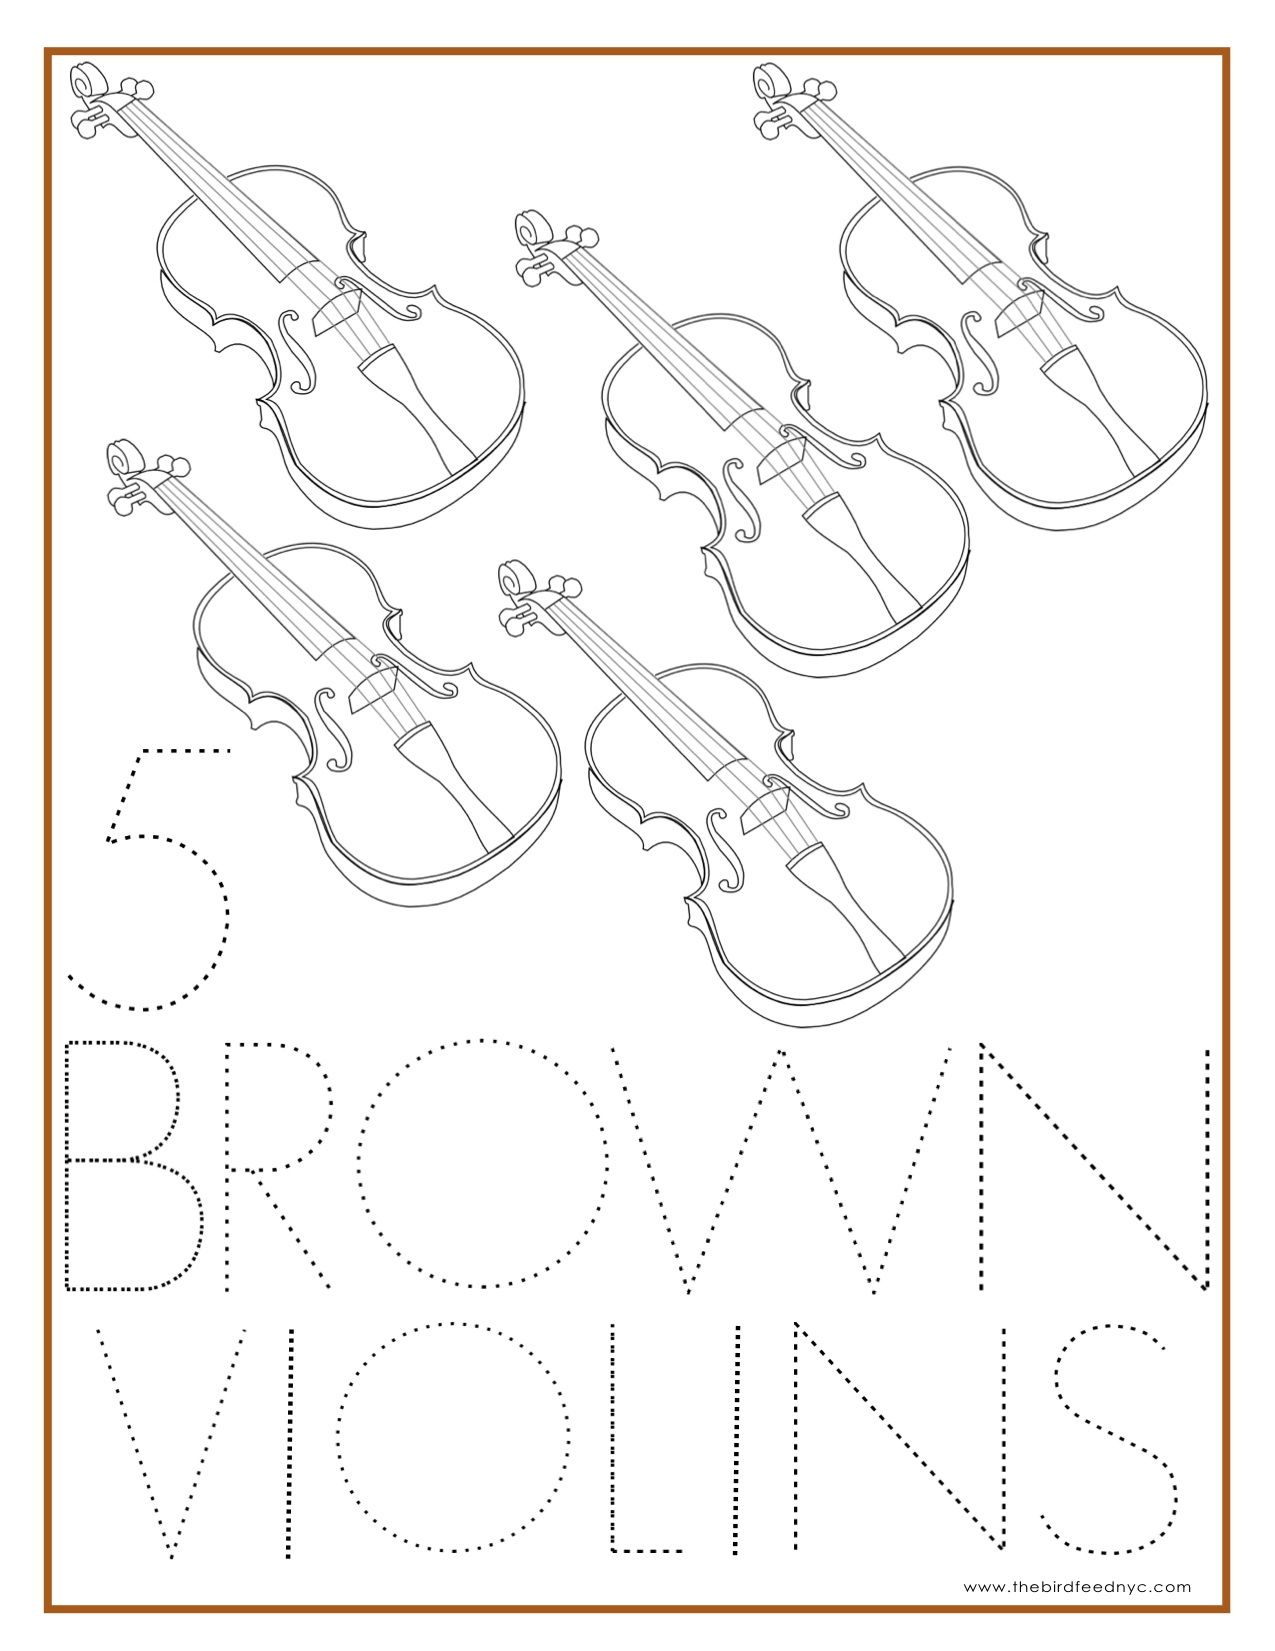 Number Coloring Sheet 5 Brown Violins